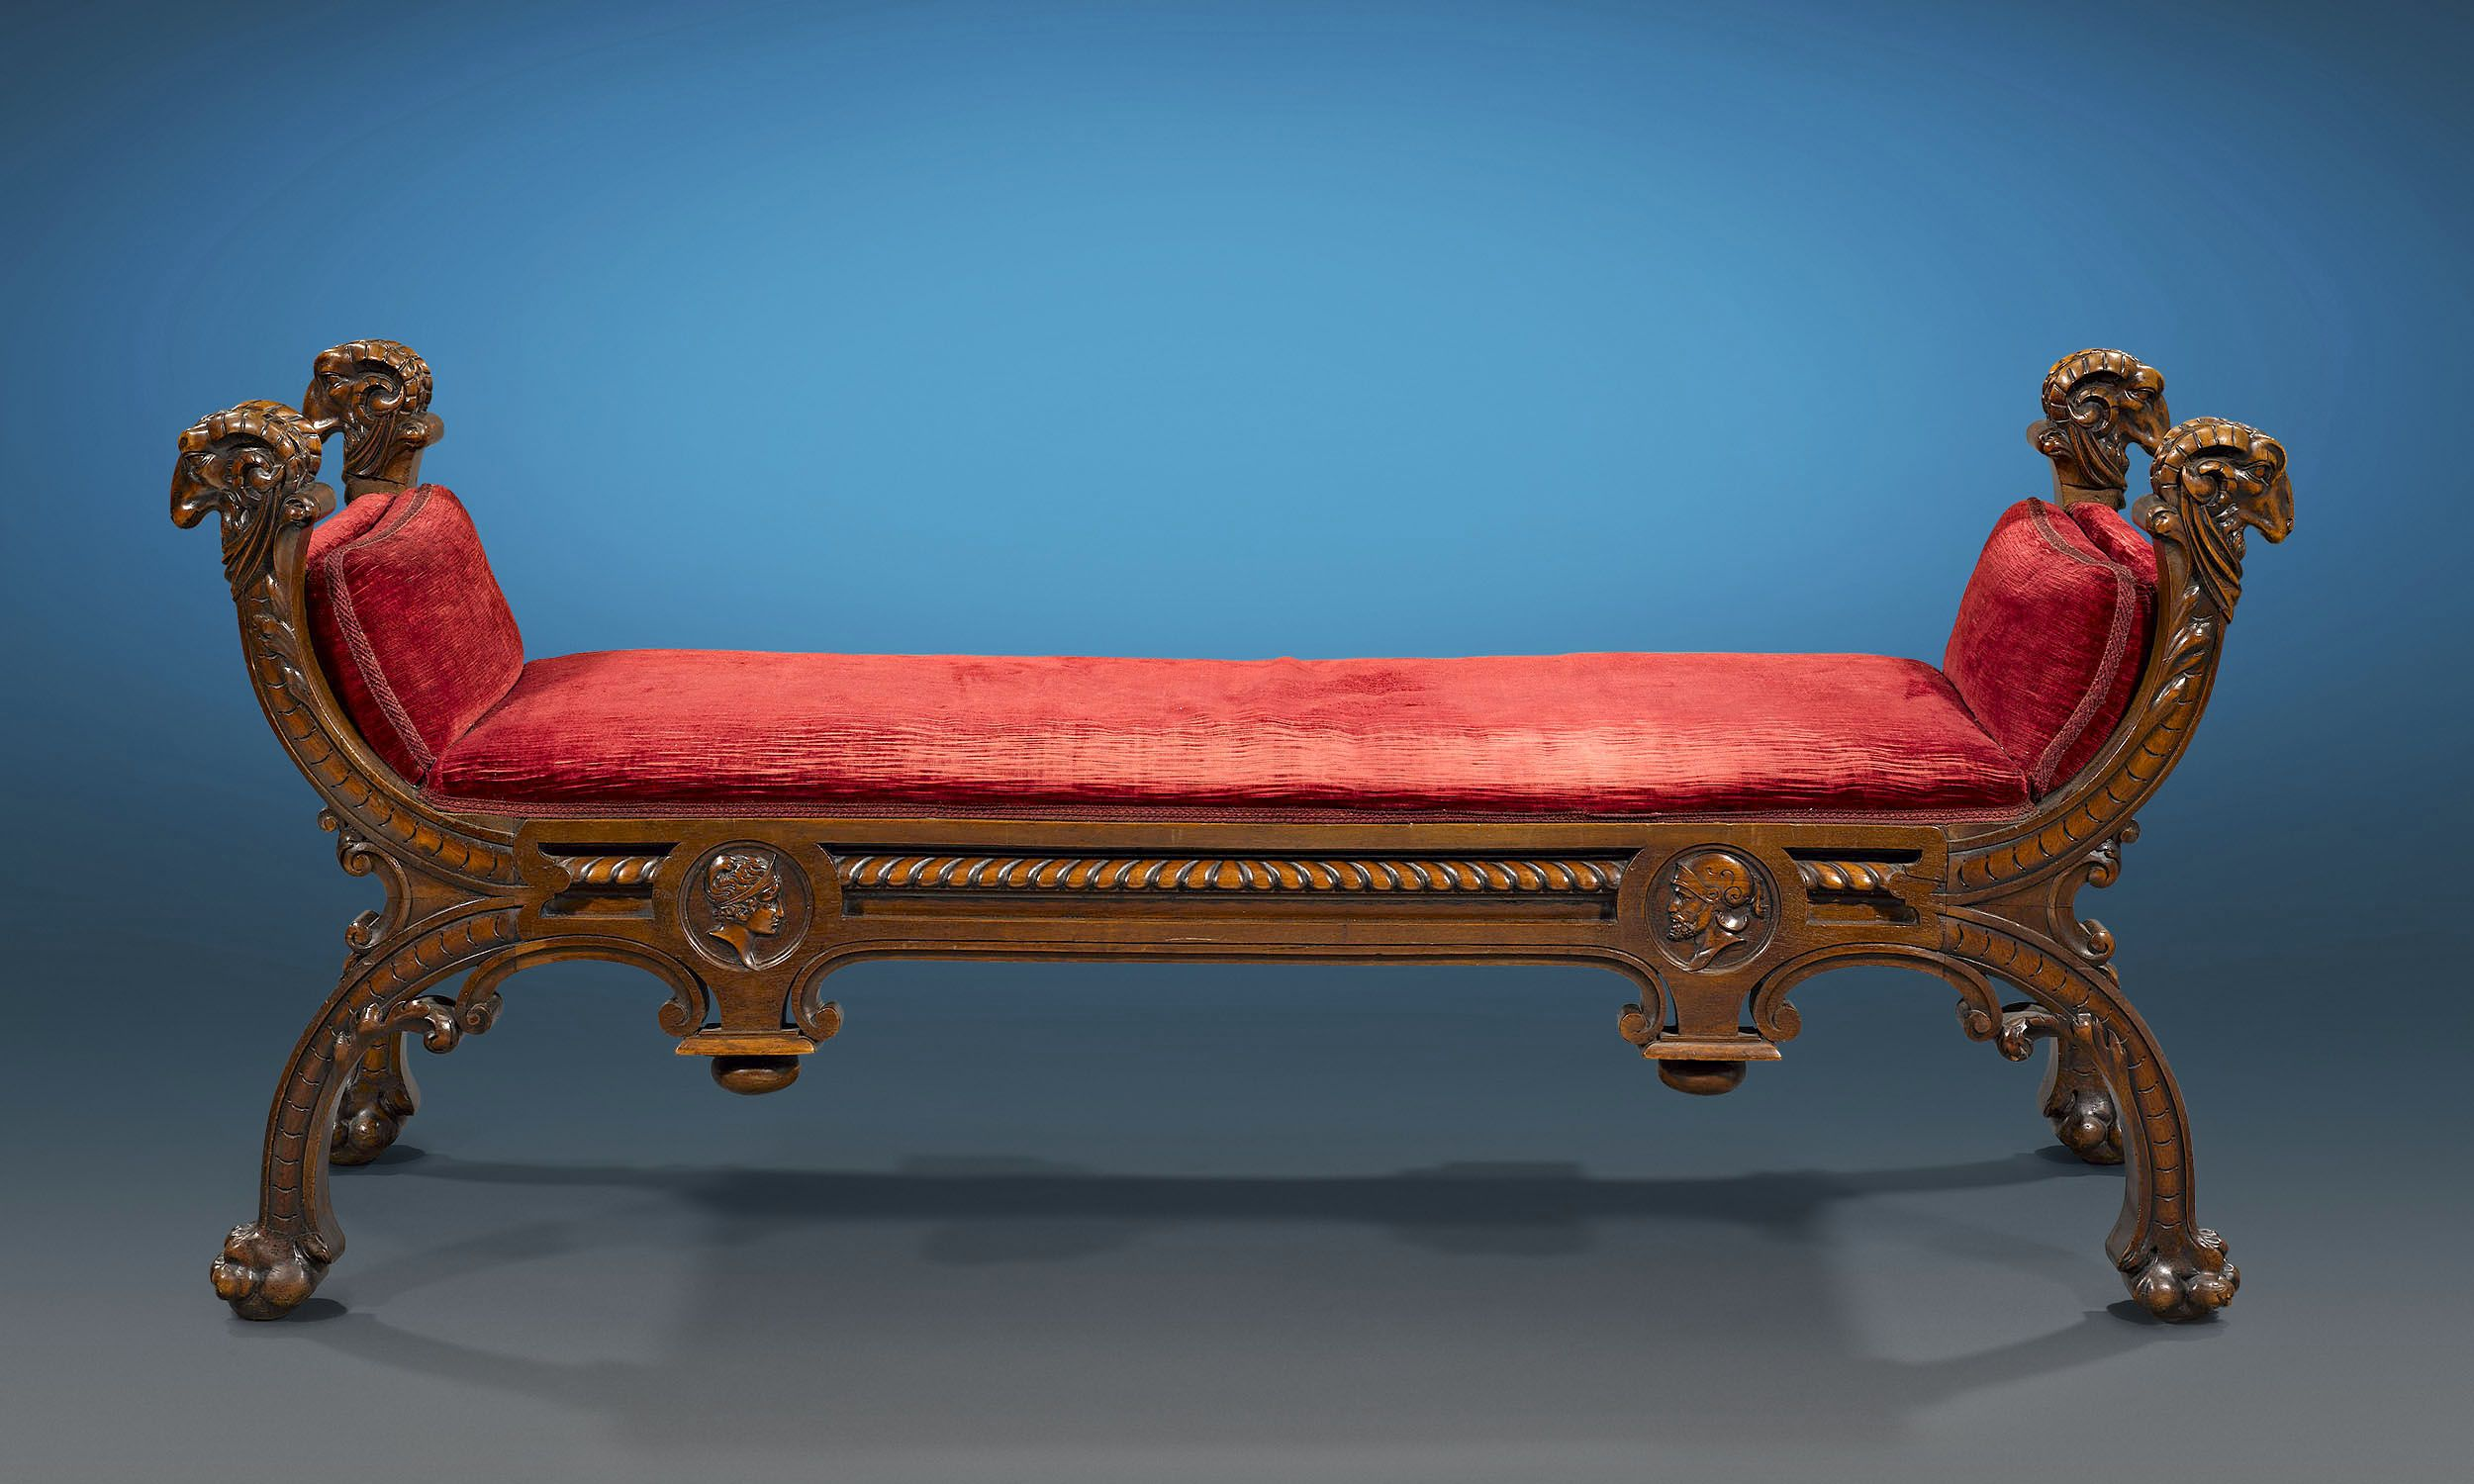 Italian Renaissance Revival Walnut Bench Sumptuous 16th-century style carvings typify this wonderful Italian Renaissance Revival walnut bench. Each corner is surmounted by intricate ram heads, while four lion paw feet support this luxurious seat. Classical, balanced and refined, this bench is a fine example of 19th-century Italian furniture design. Circa 1870